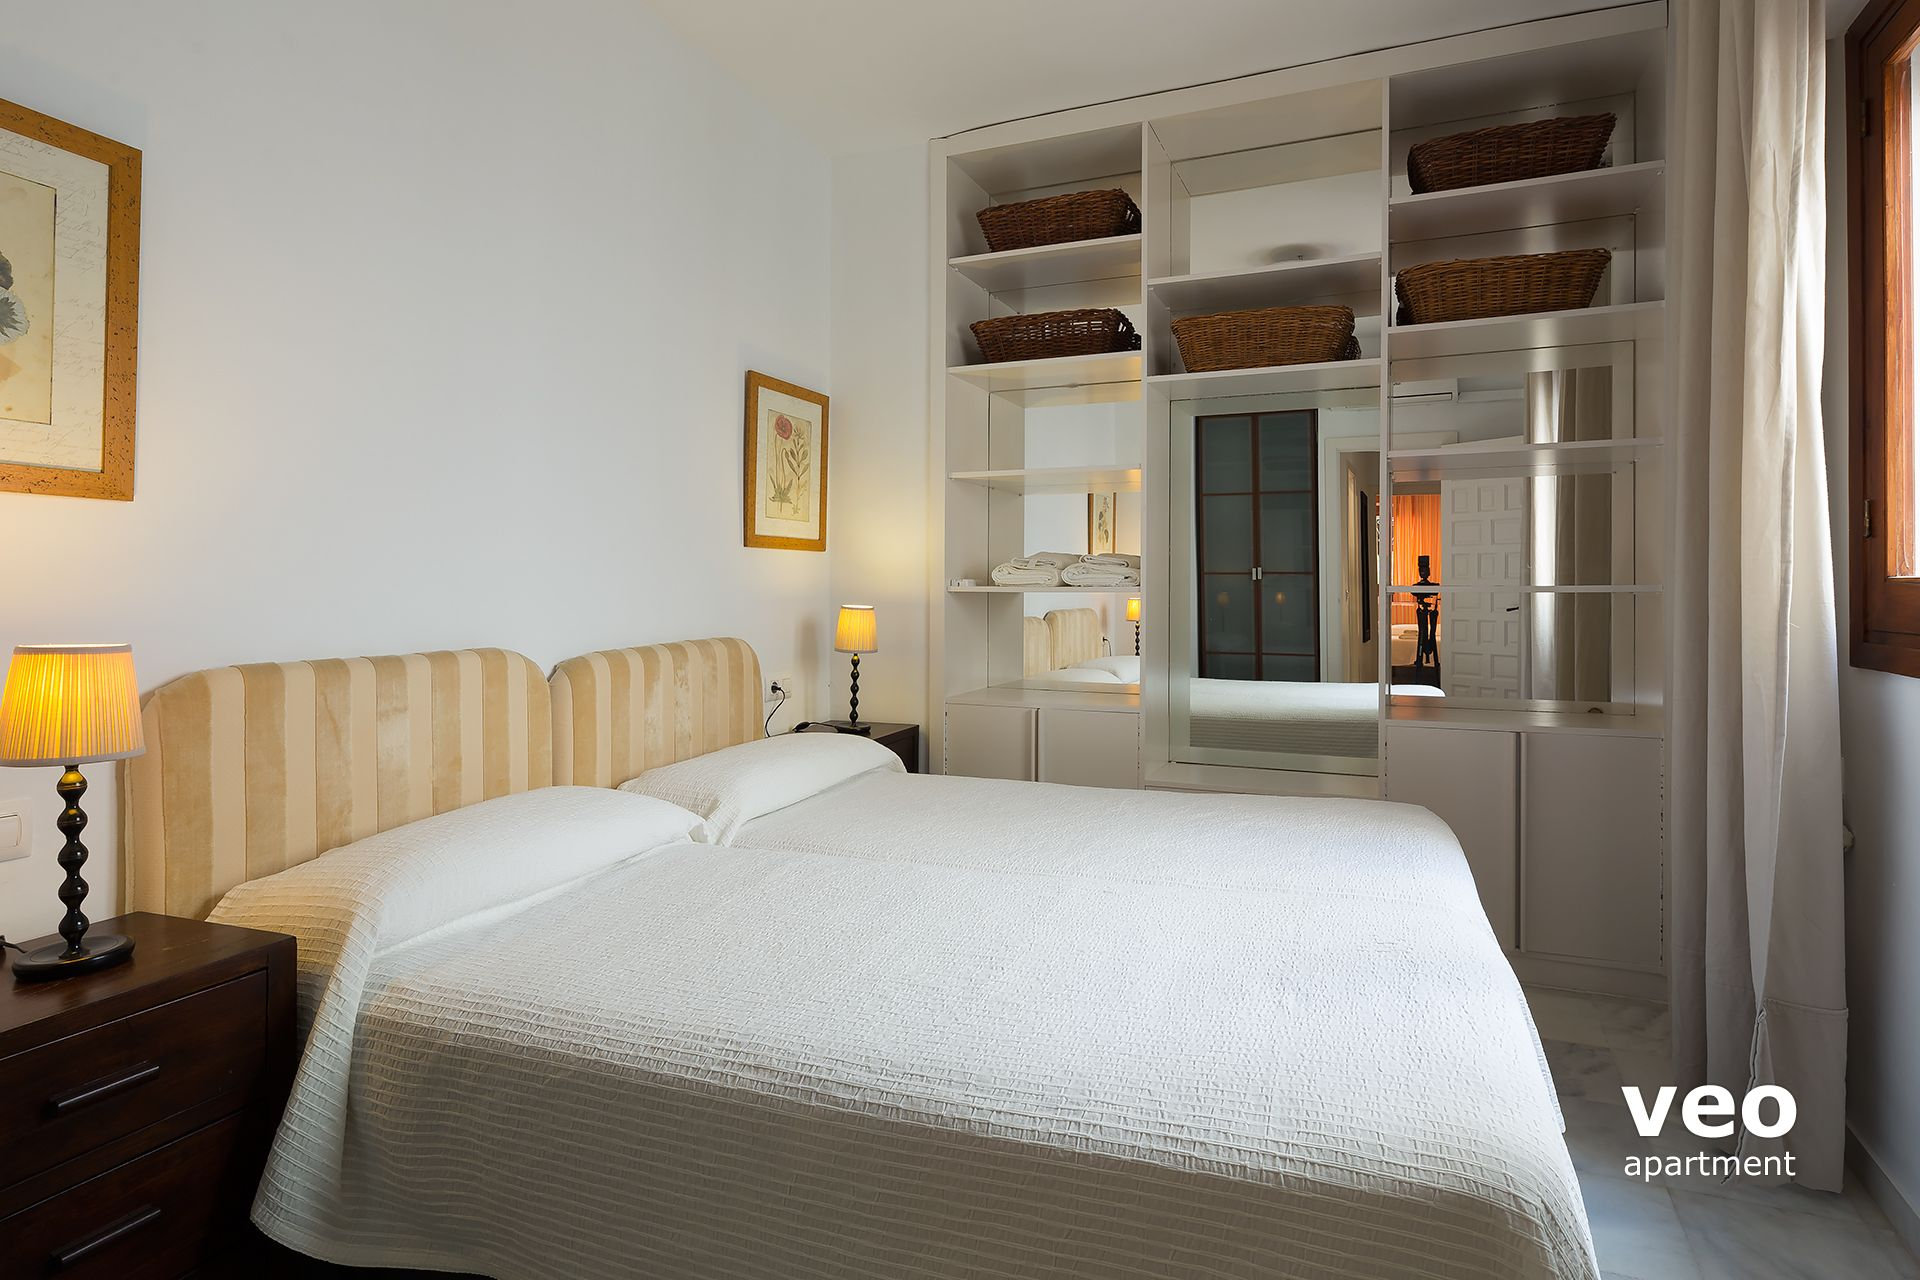 Bedroom For Two Twin Beds Seville Apartment Adolfo Cuacllar Street Seville Spain Rositas